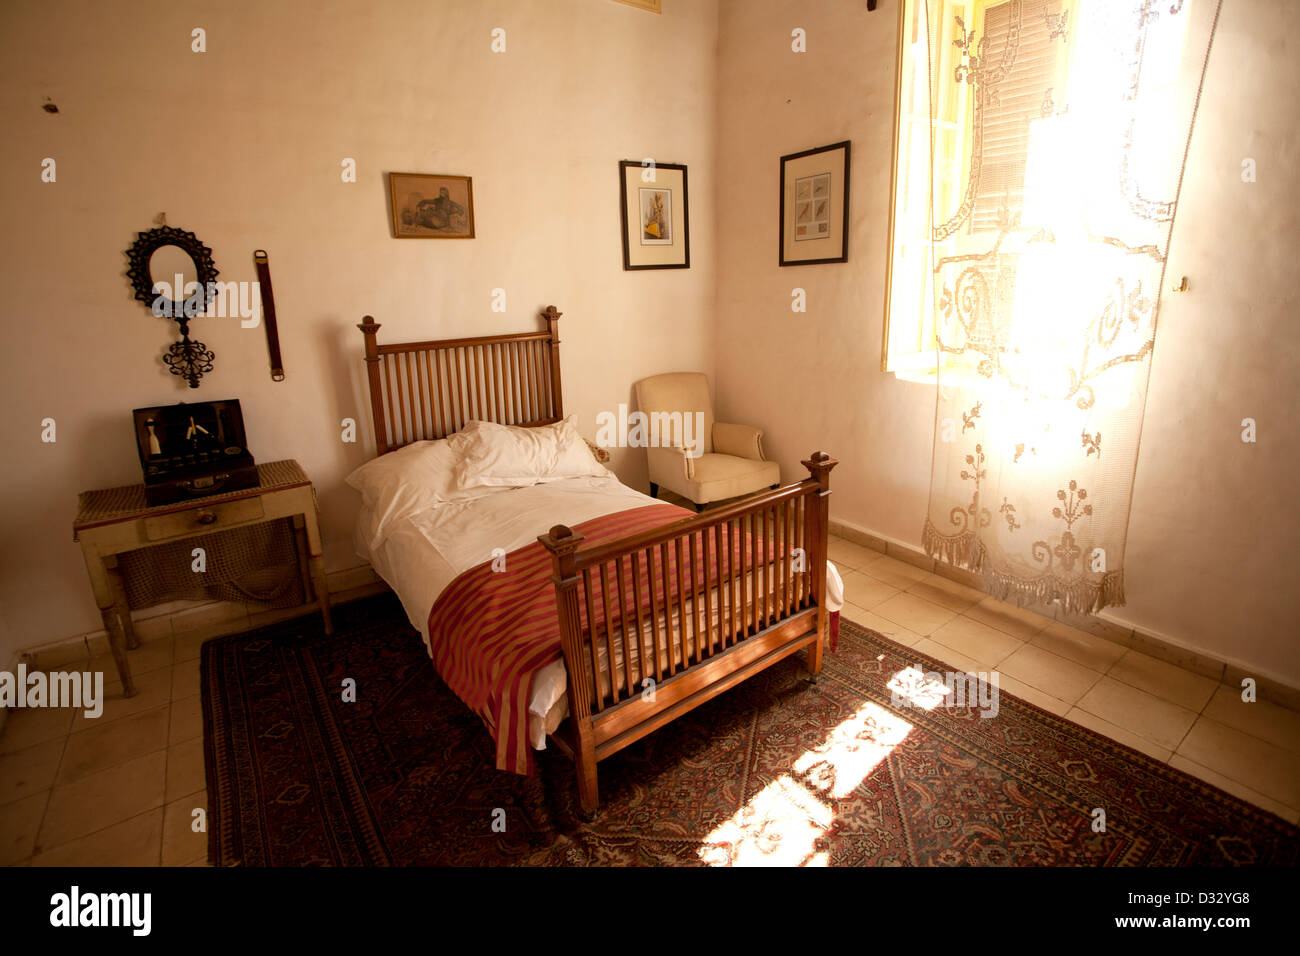 Bedroom At The Howard Carter House Museum In Luxor Egypt Stock Photo Alamy